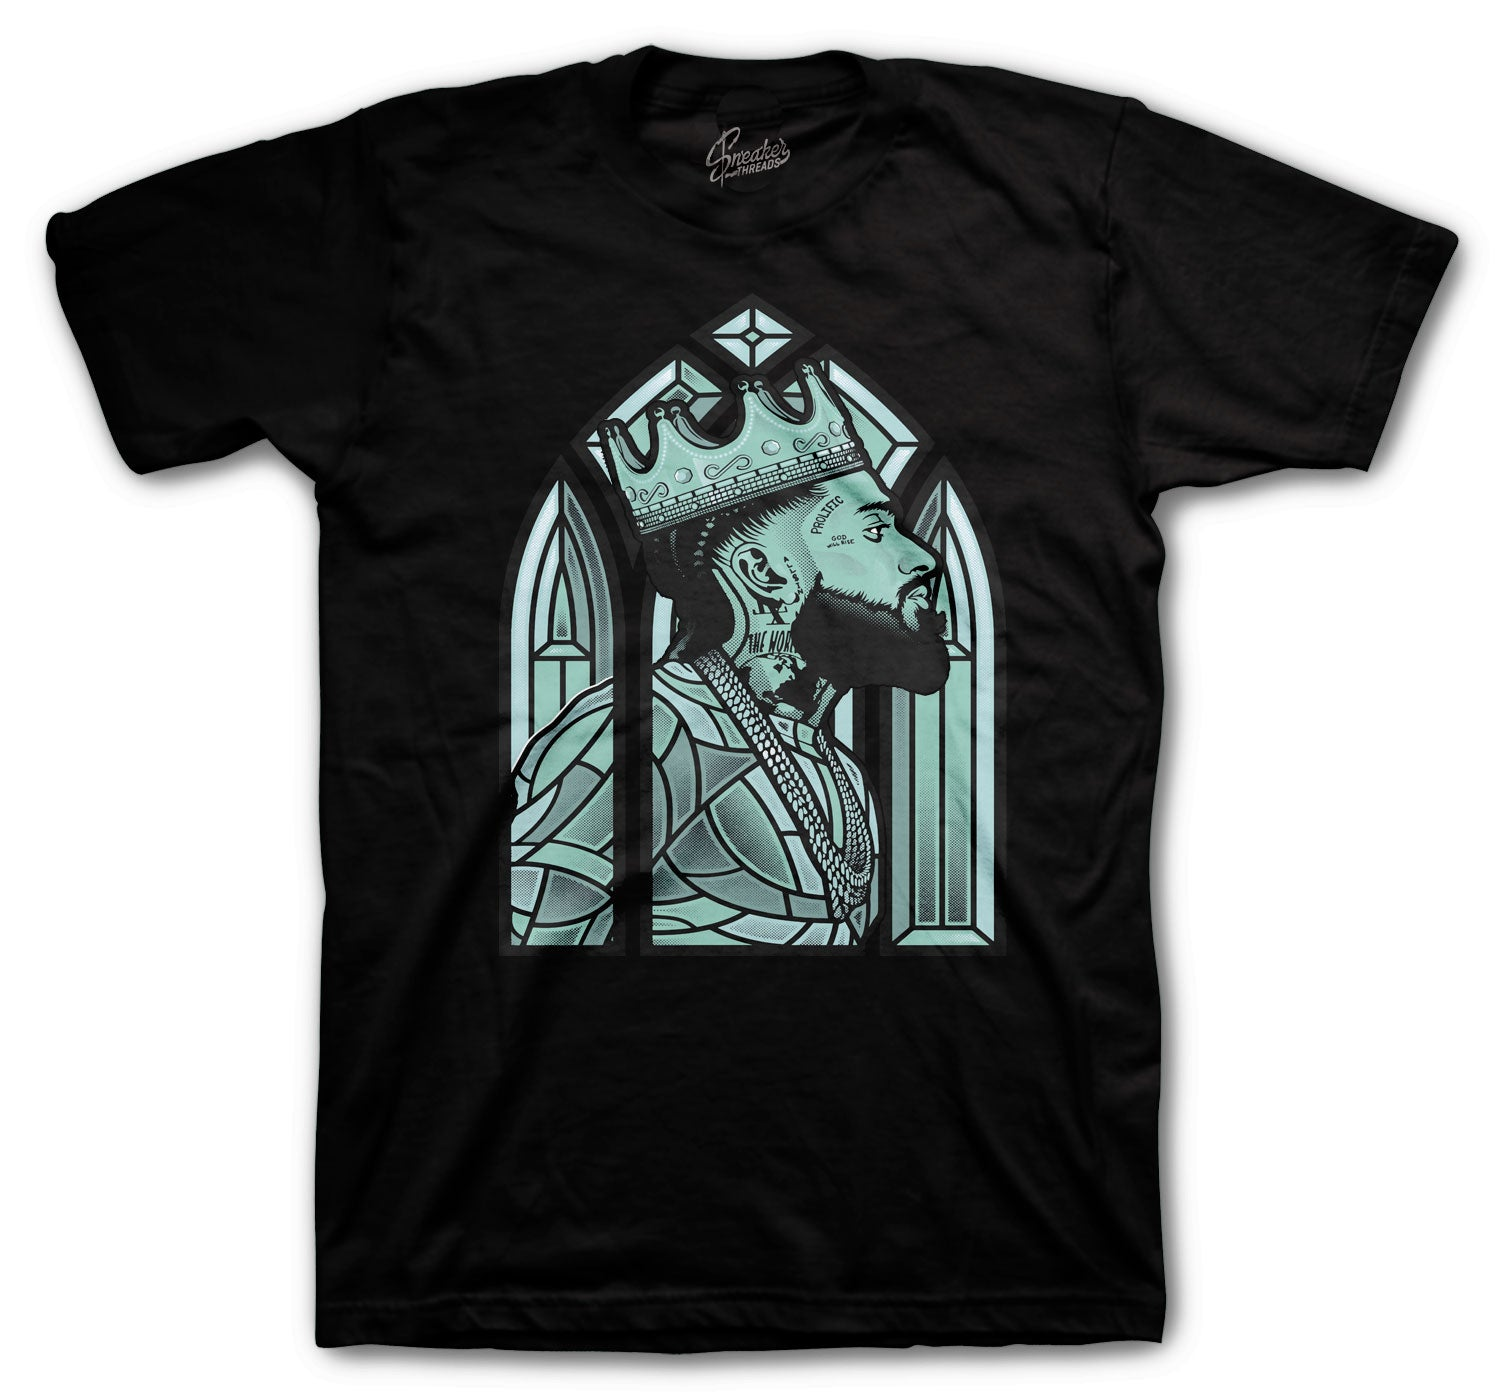 Jordan 12 Easter Shirt - Nip Glass - Black